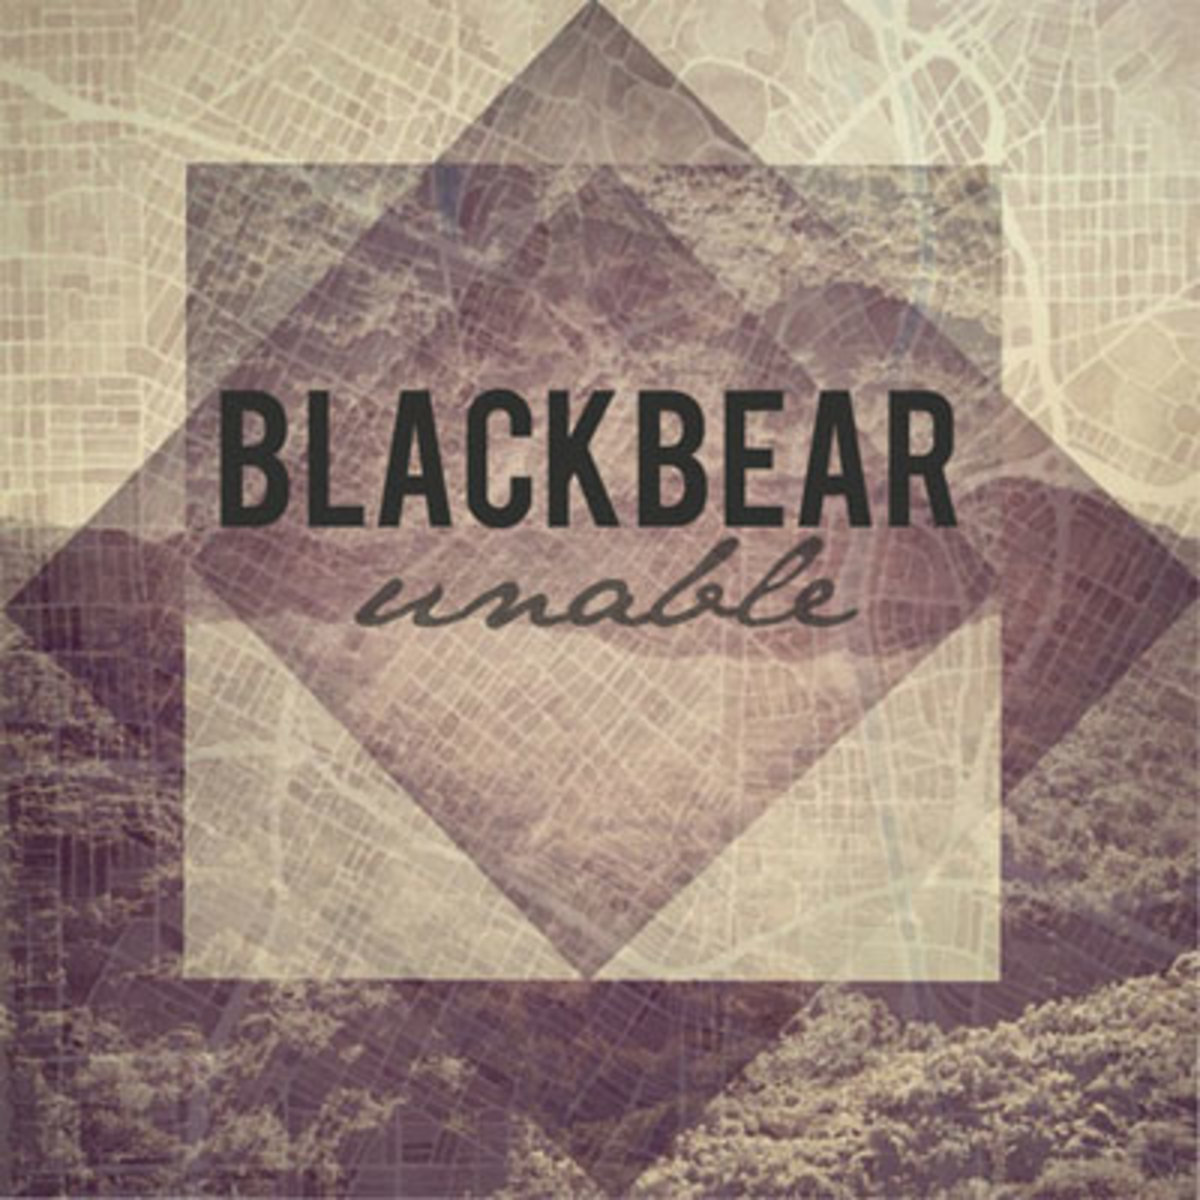 blackbear-unable.jpg